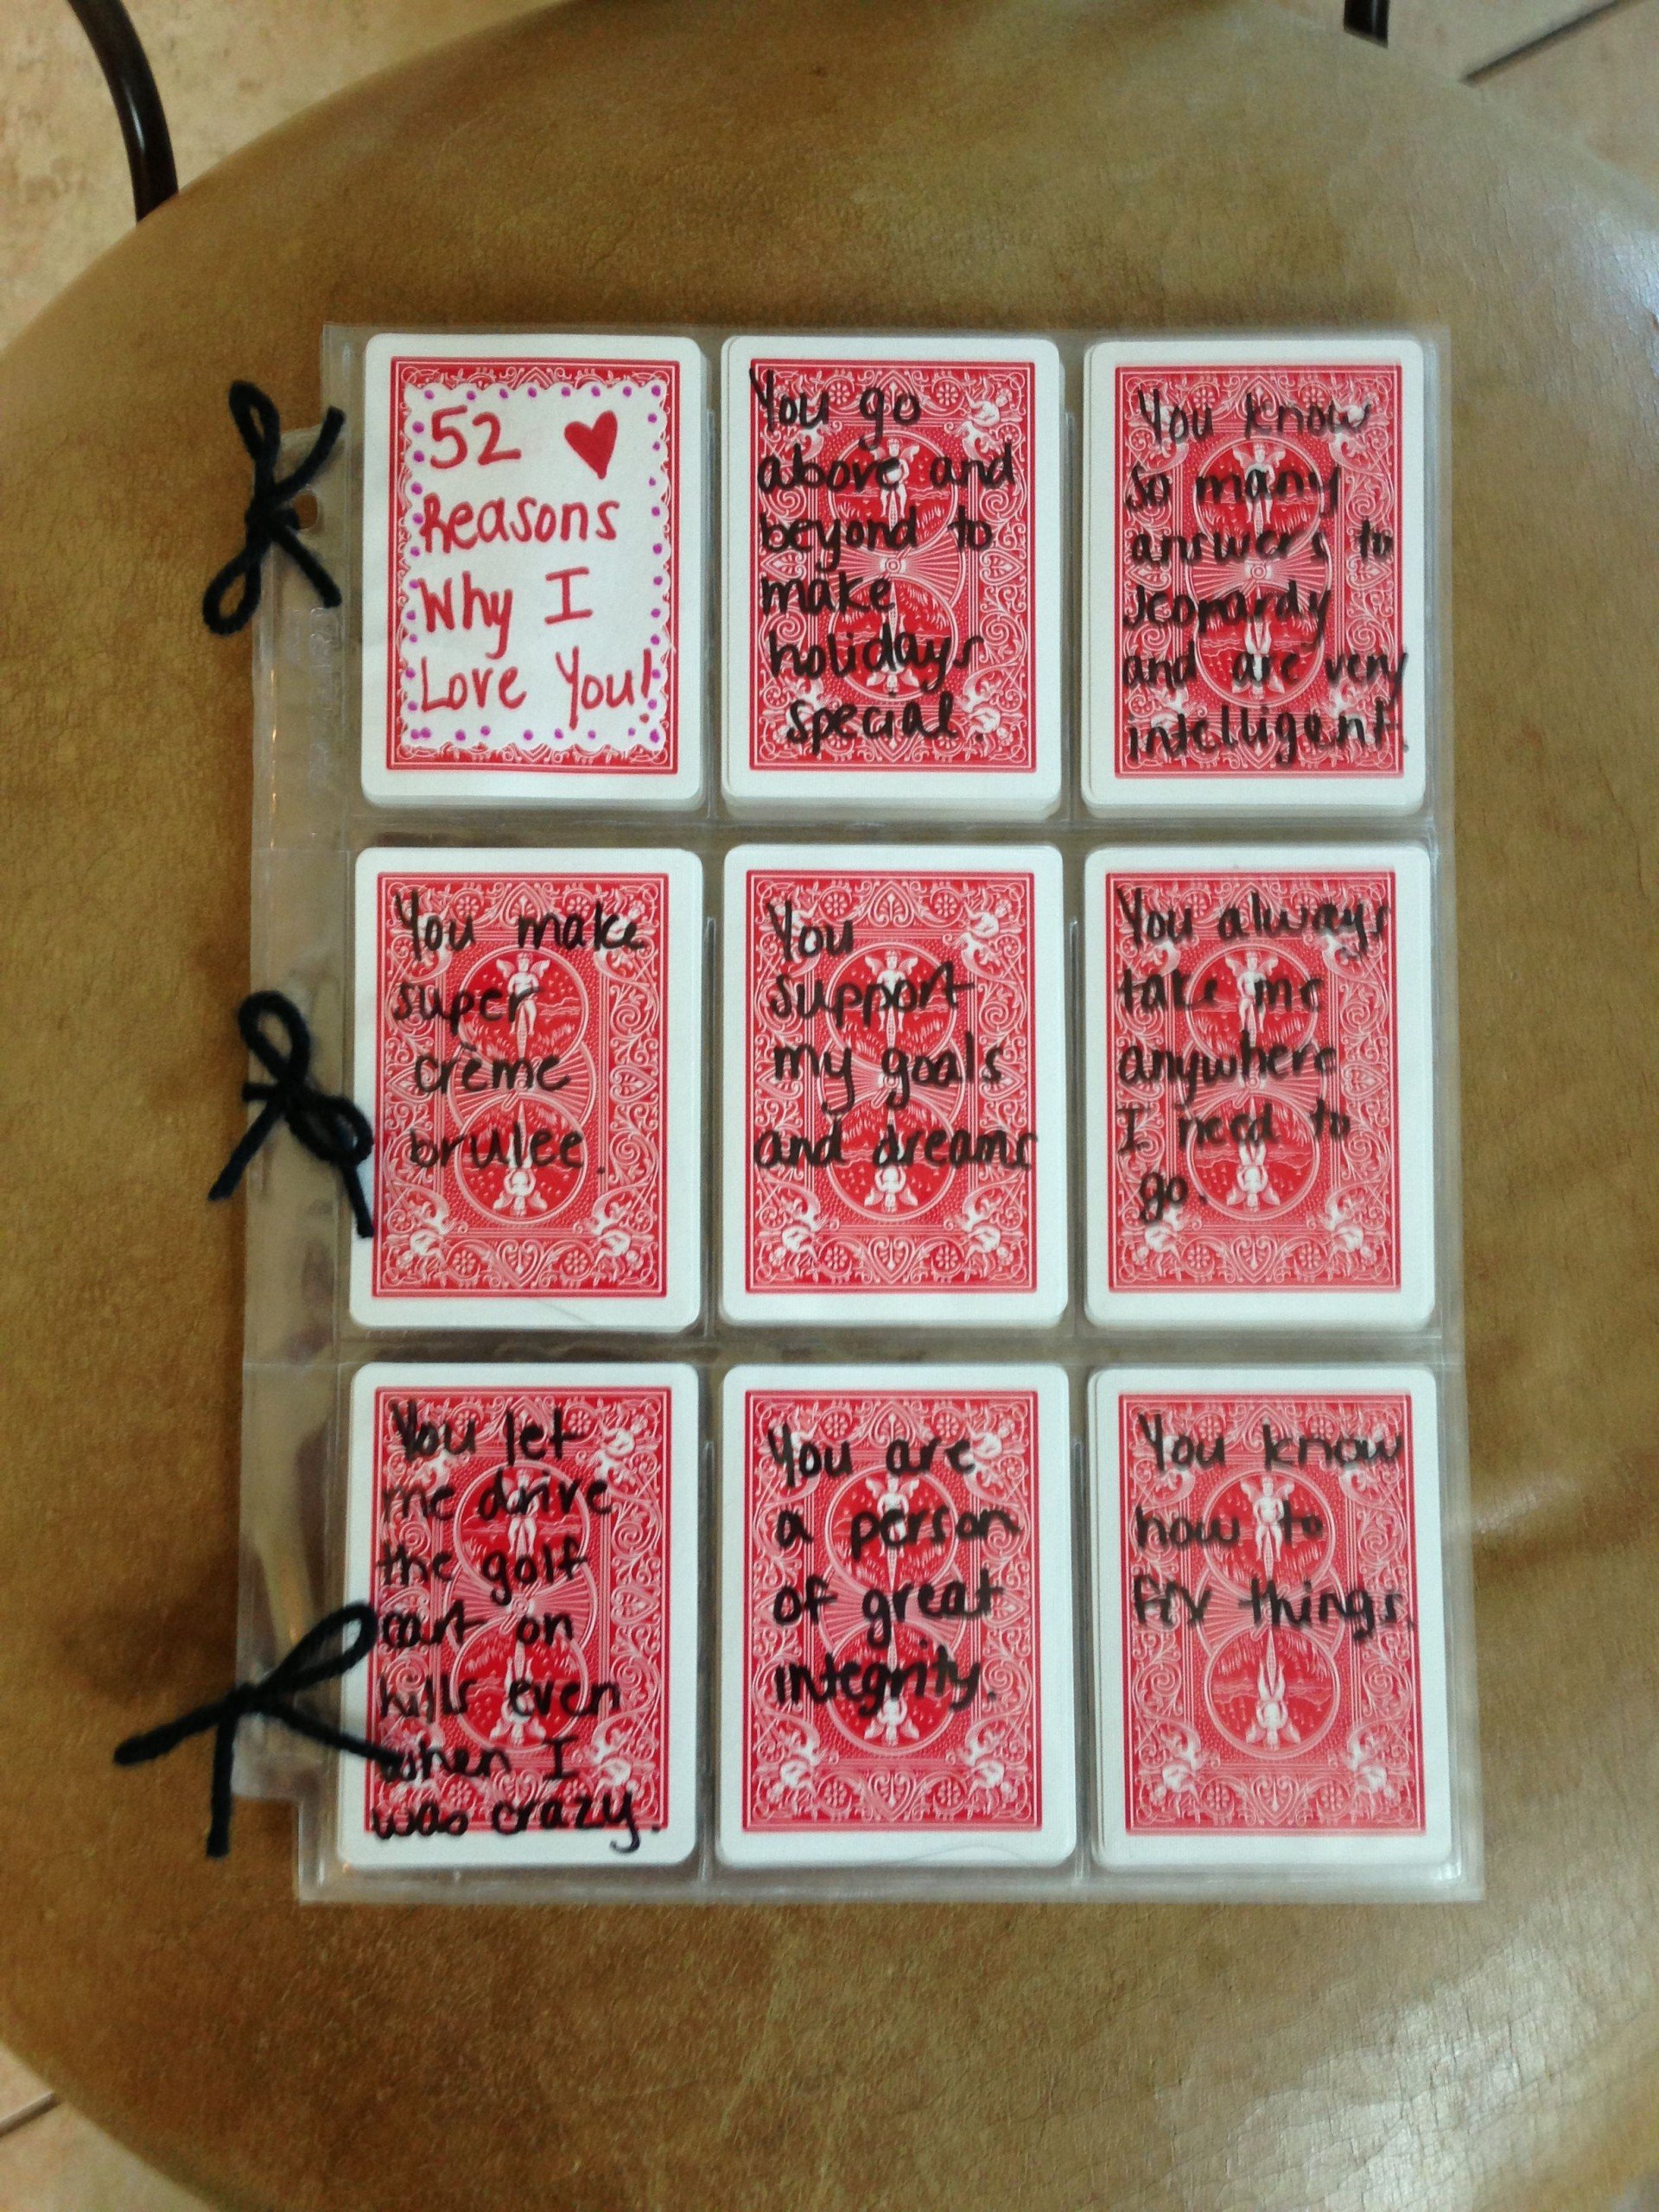 002 Astounding 52 Reason Why I Love You Deck Of Card Free Template Image 1920